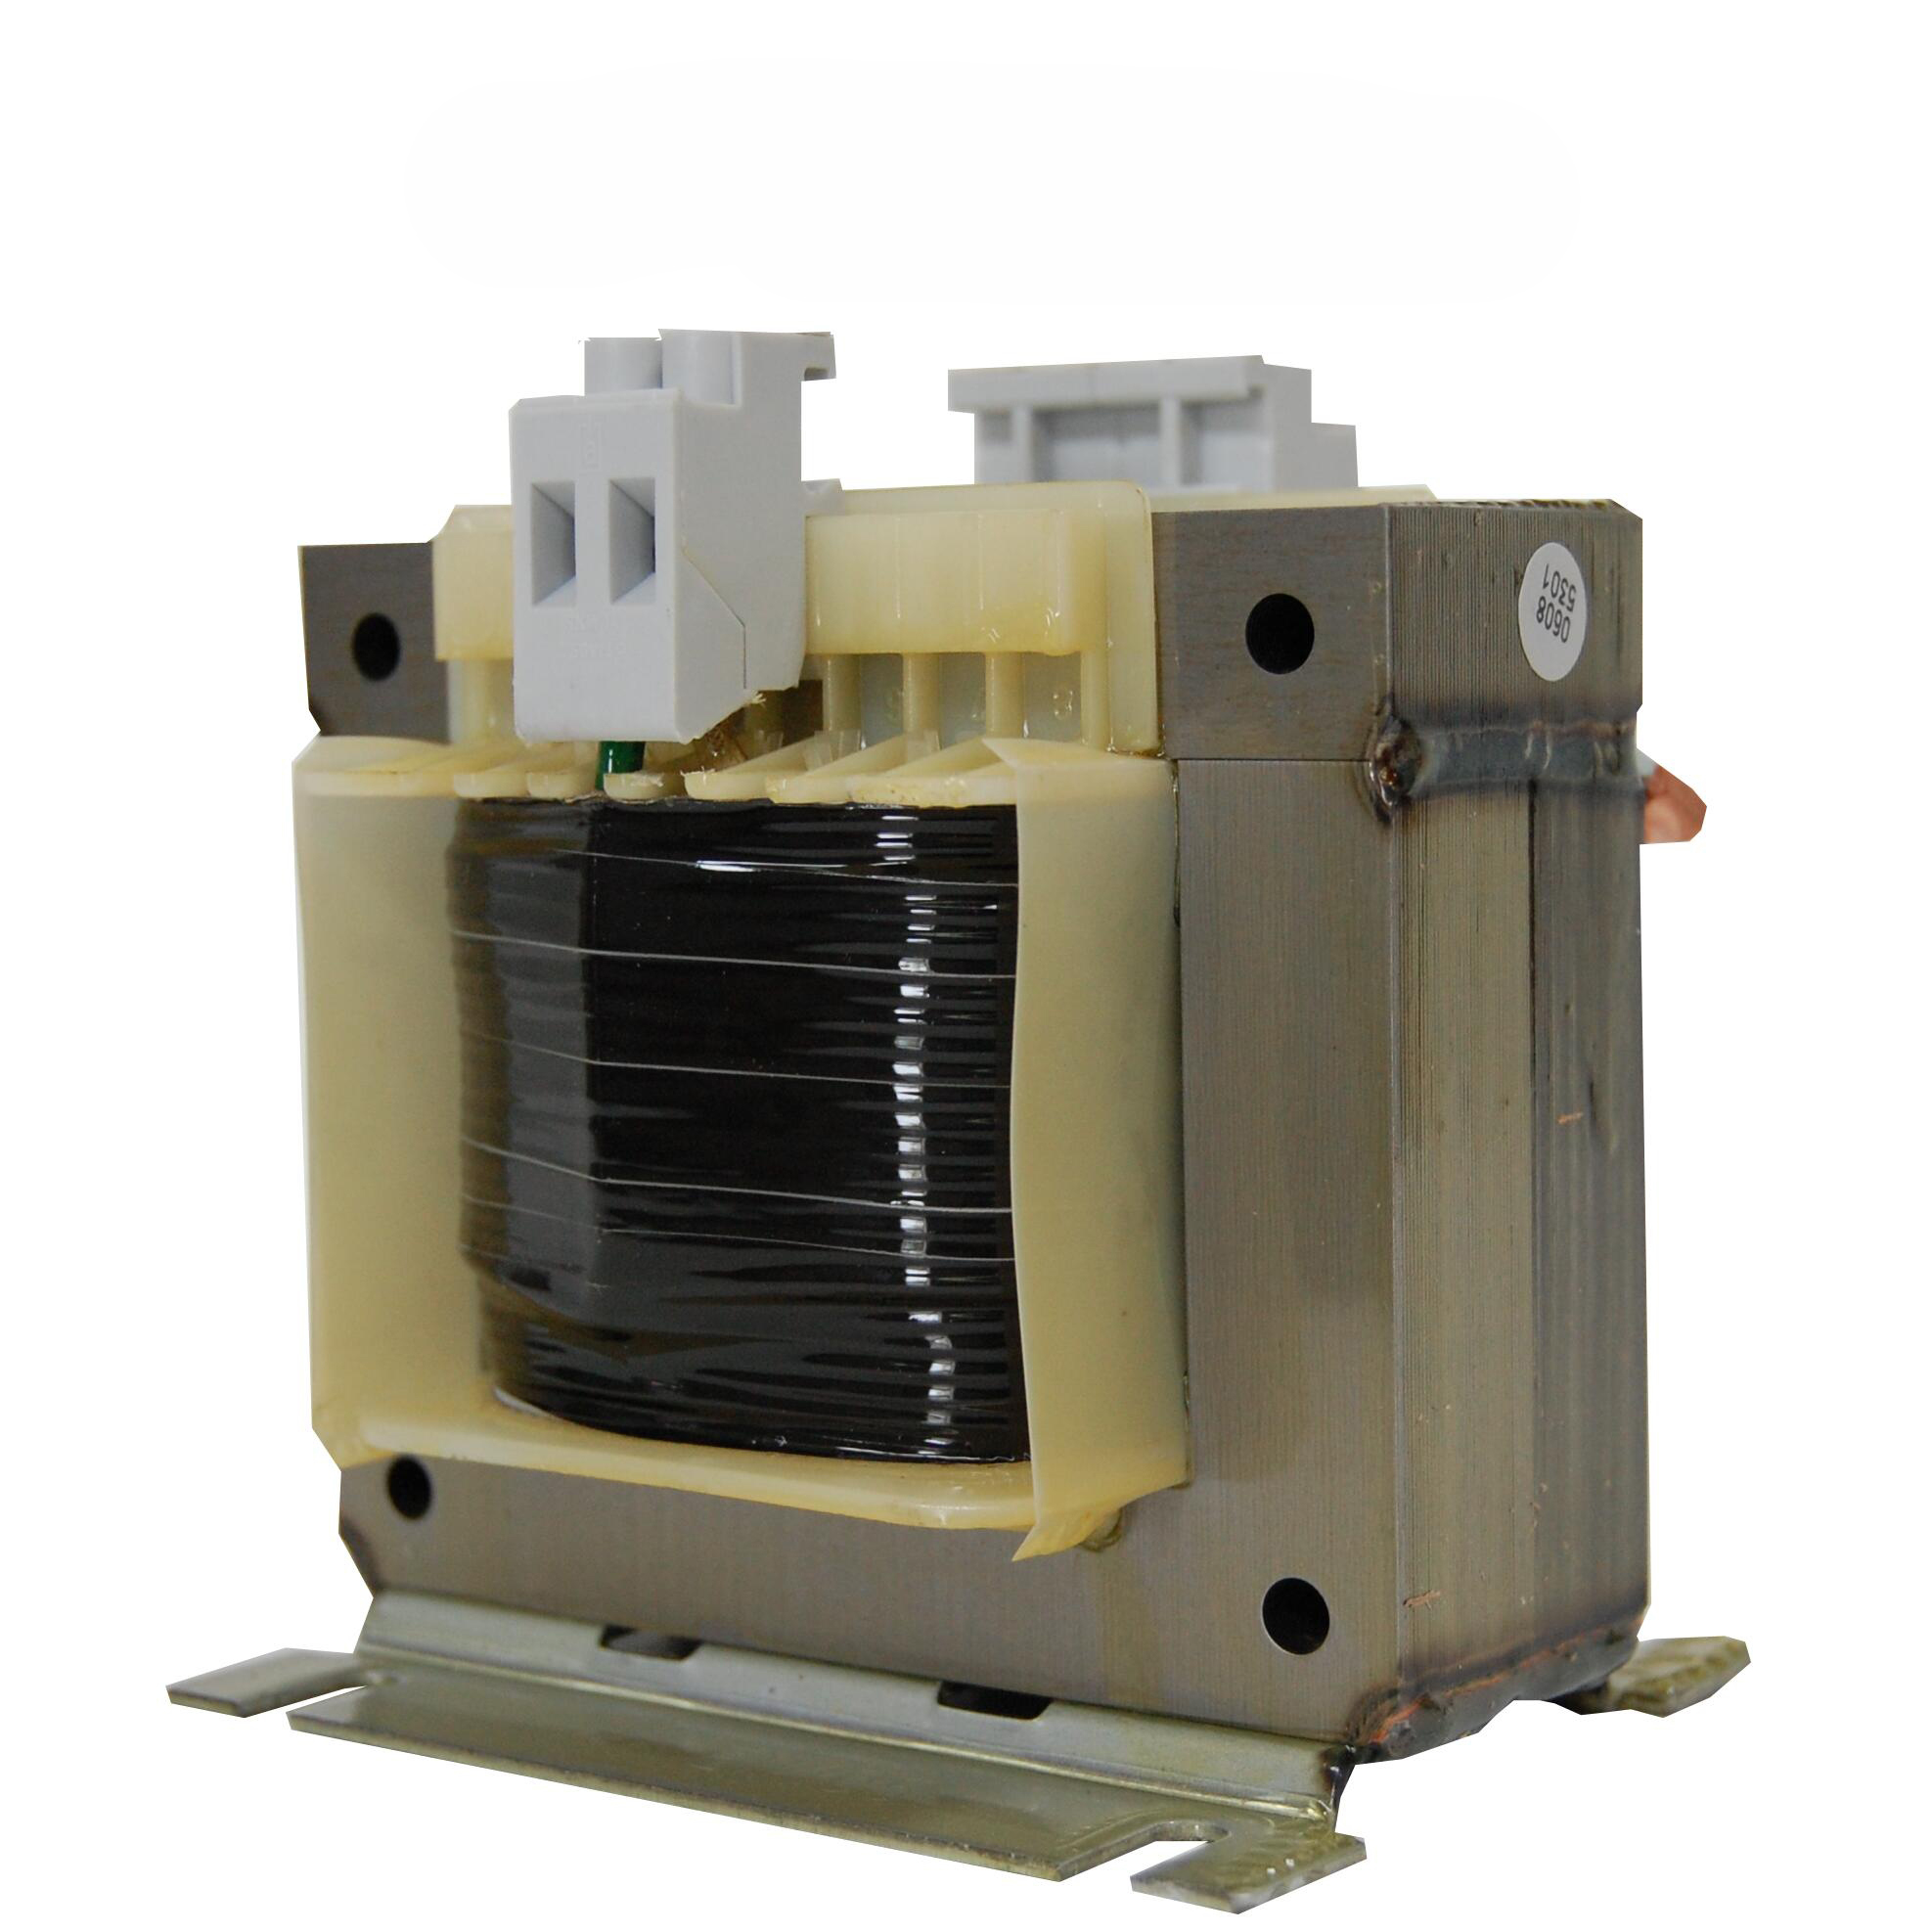 Single Phase Control Transformer 400 230v 2500va Ip00 Online 20a Circuit Breaker 400v Onoff Mcb With Cover Buy Shop Schrack Technik International